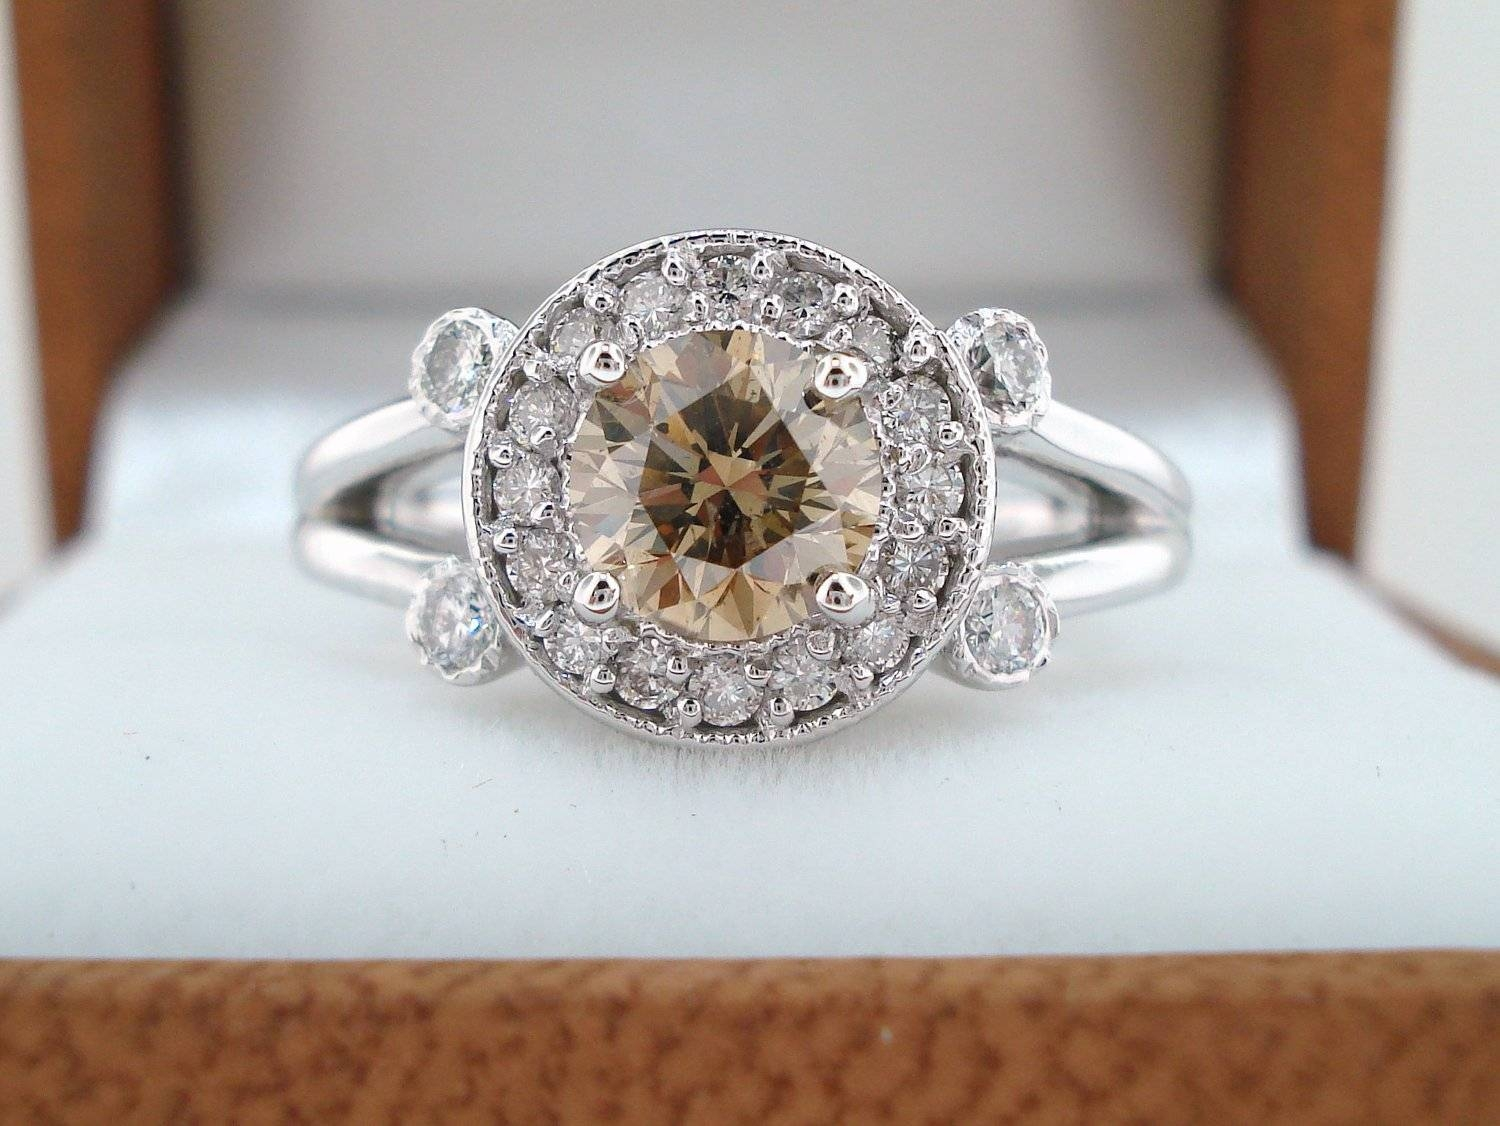 Wedding Rings : Vintage Engagement Rings Etsy Amazing Etsy Wedding Throughout Etsy Vintage Wedding Bands (View 15 of 15)